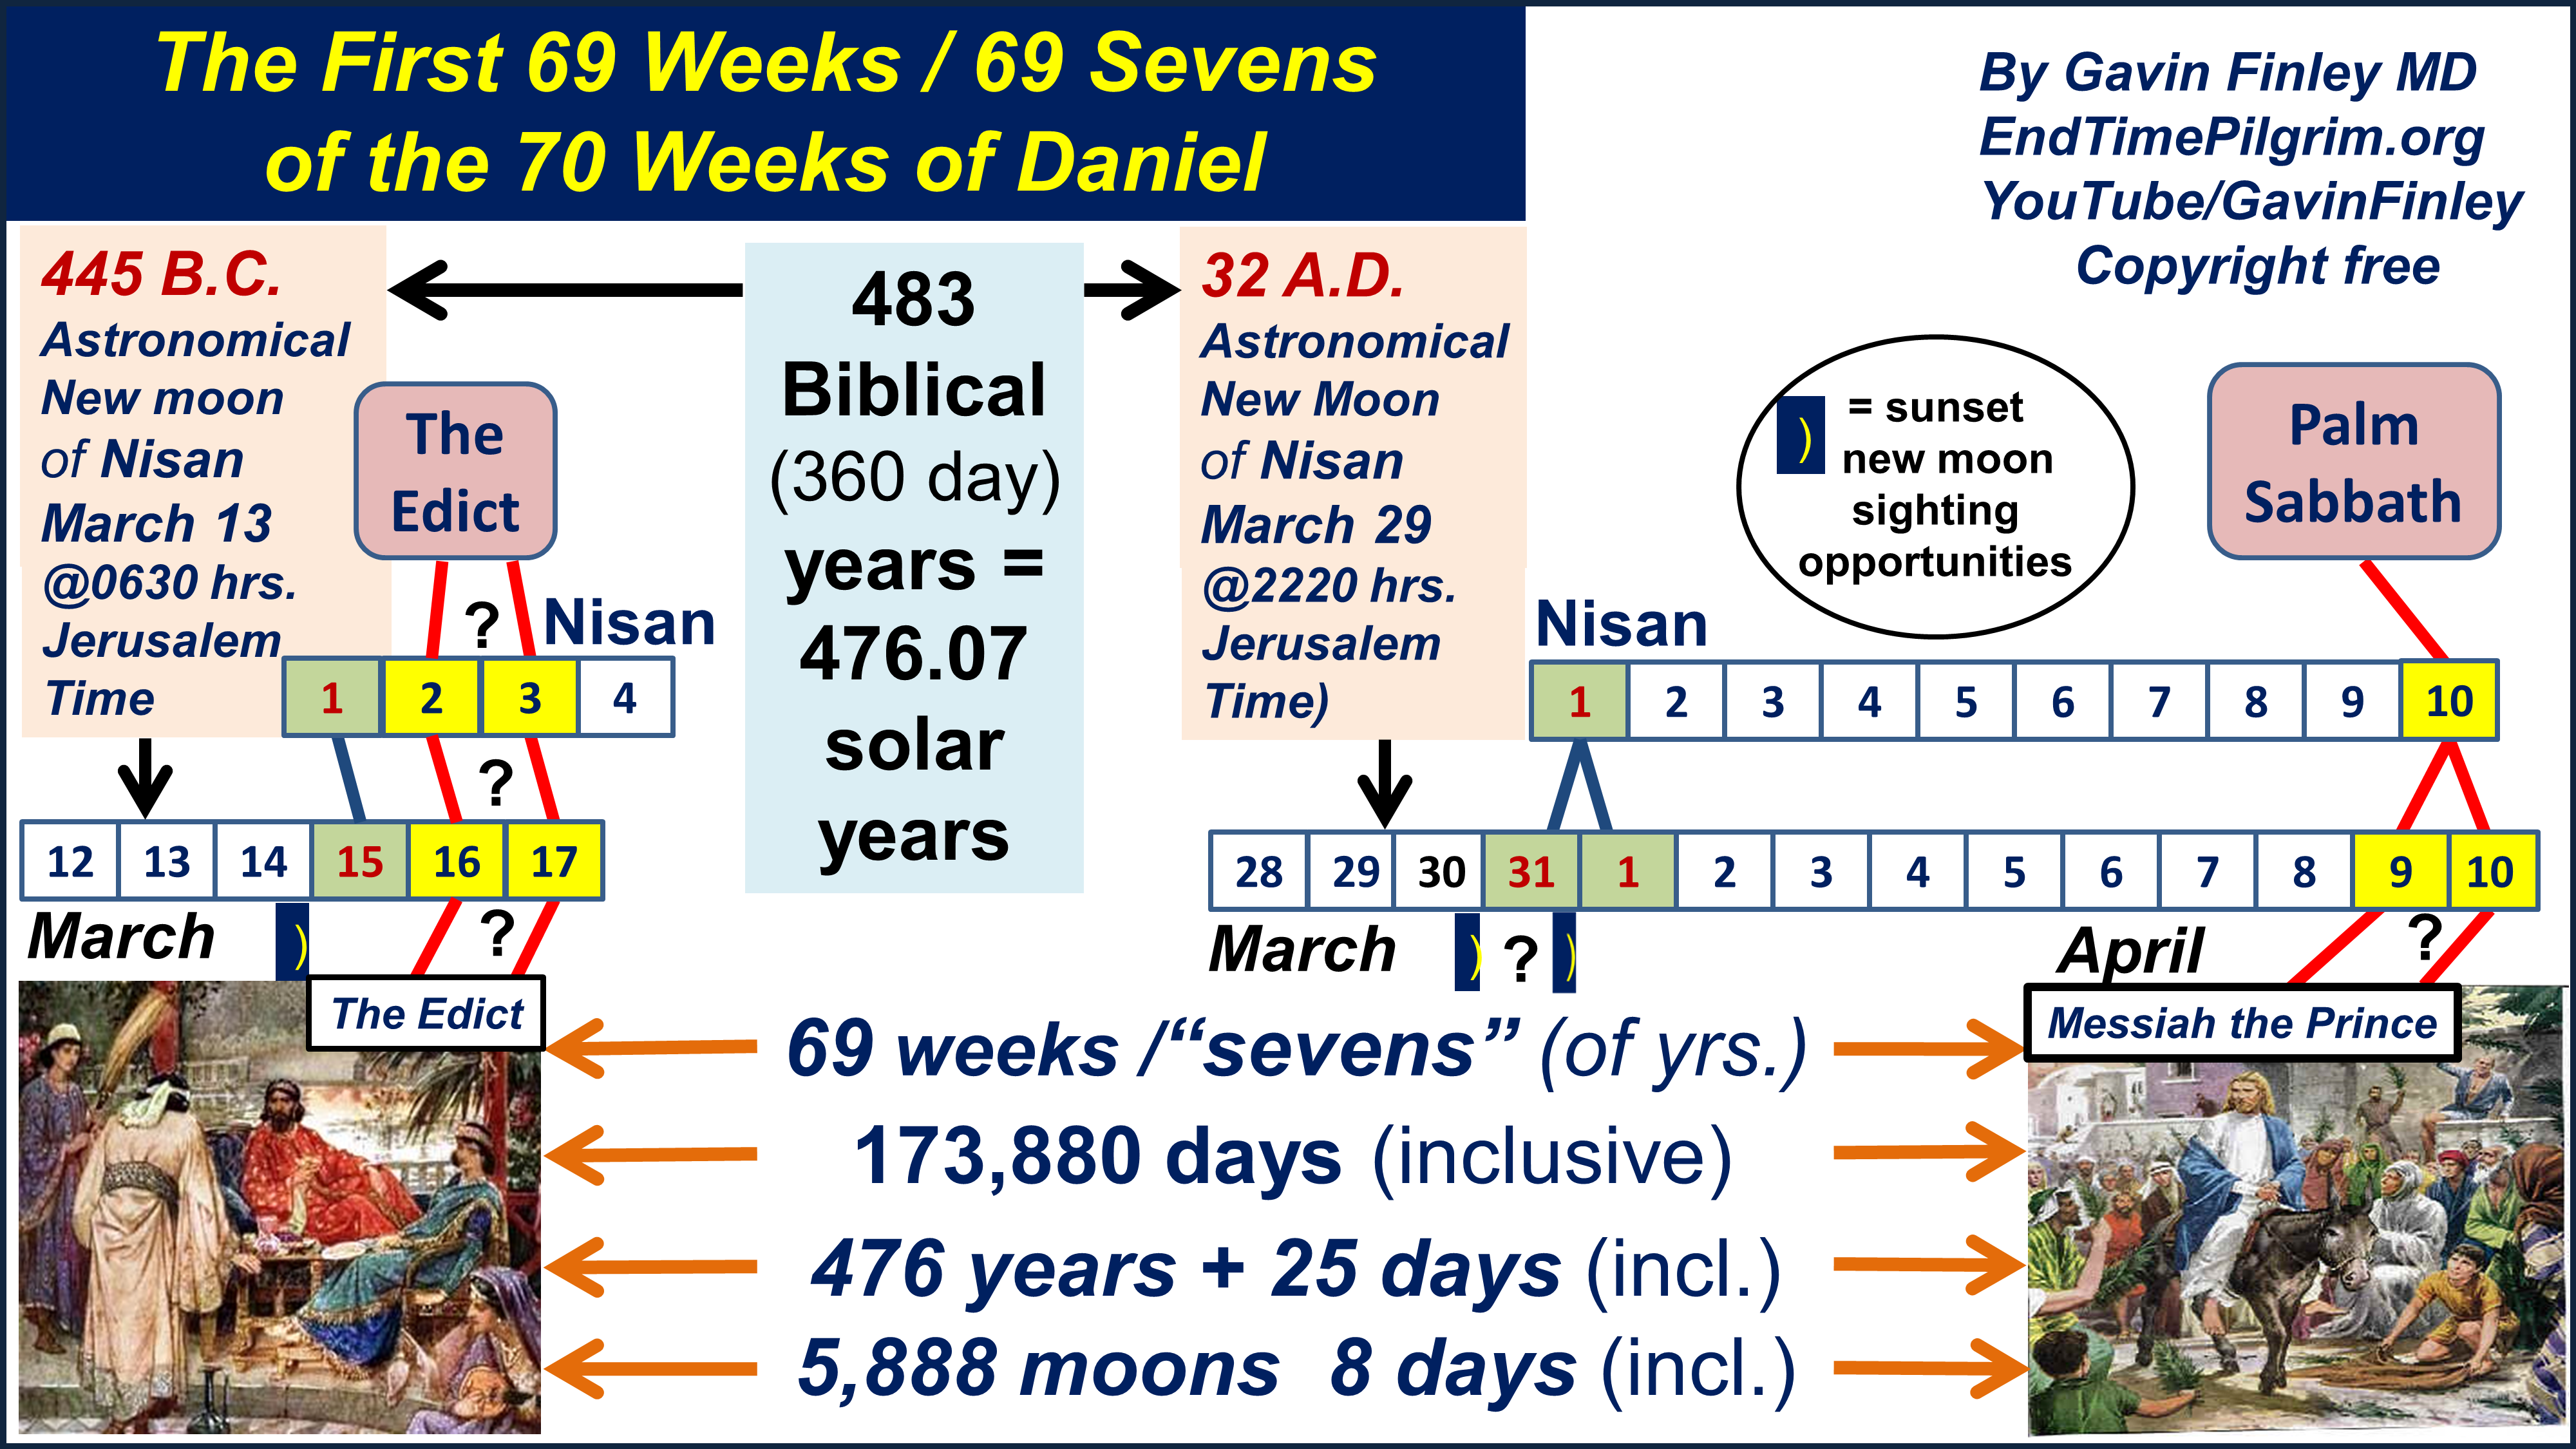 THE FIRST 69 WEEKS OF THE SEVENTY WEEKS OF DANIEL